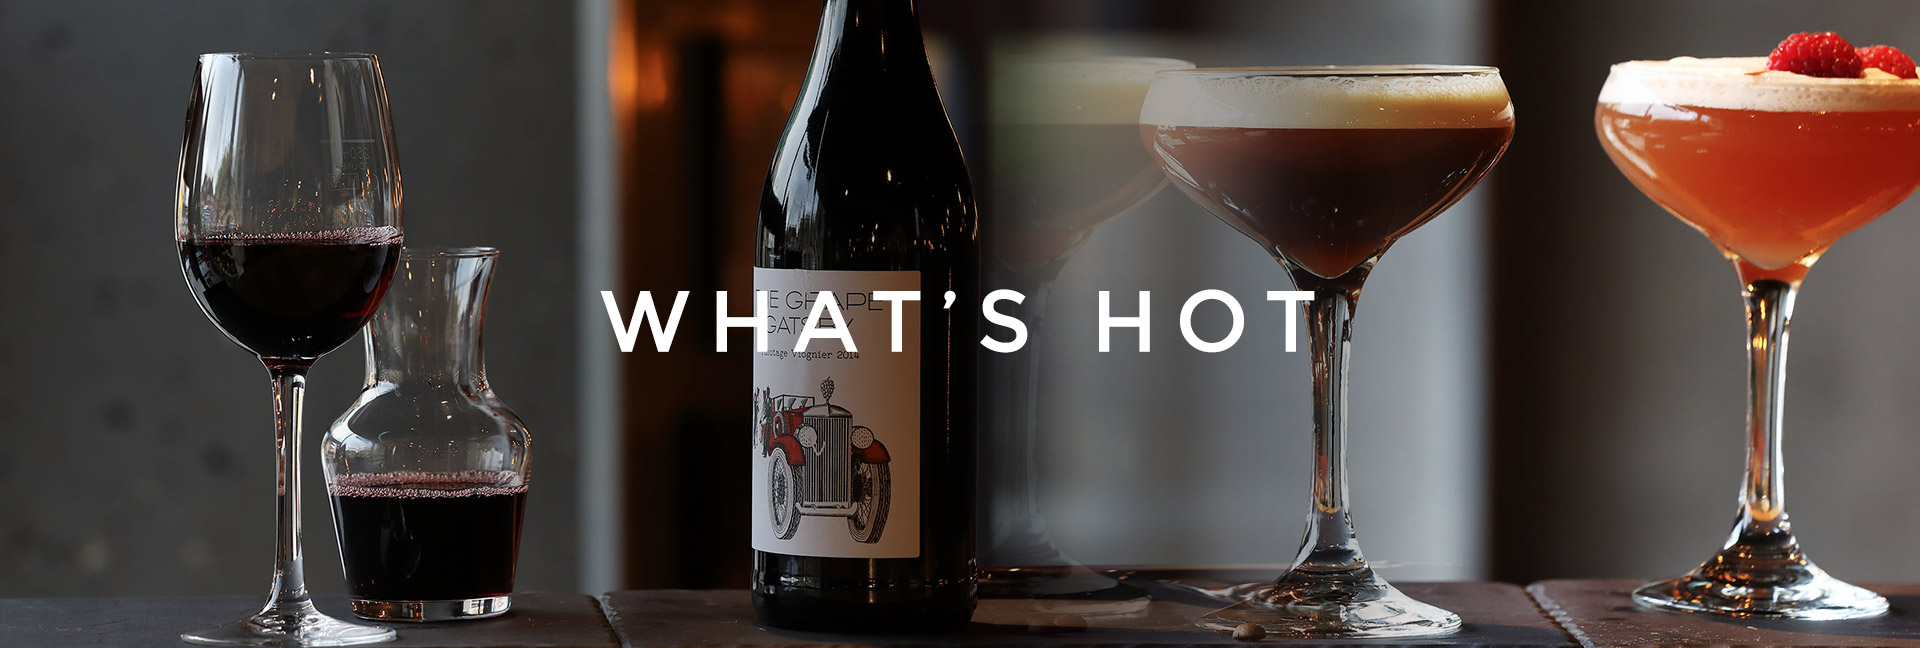 What's Hot at All Bar One Kingsway